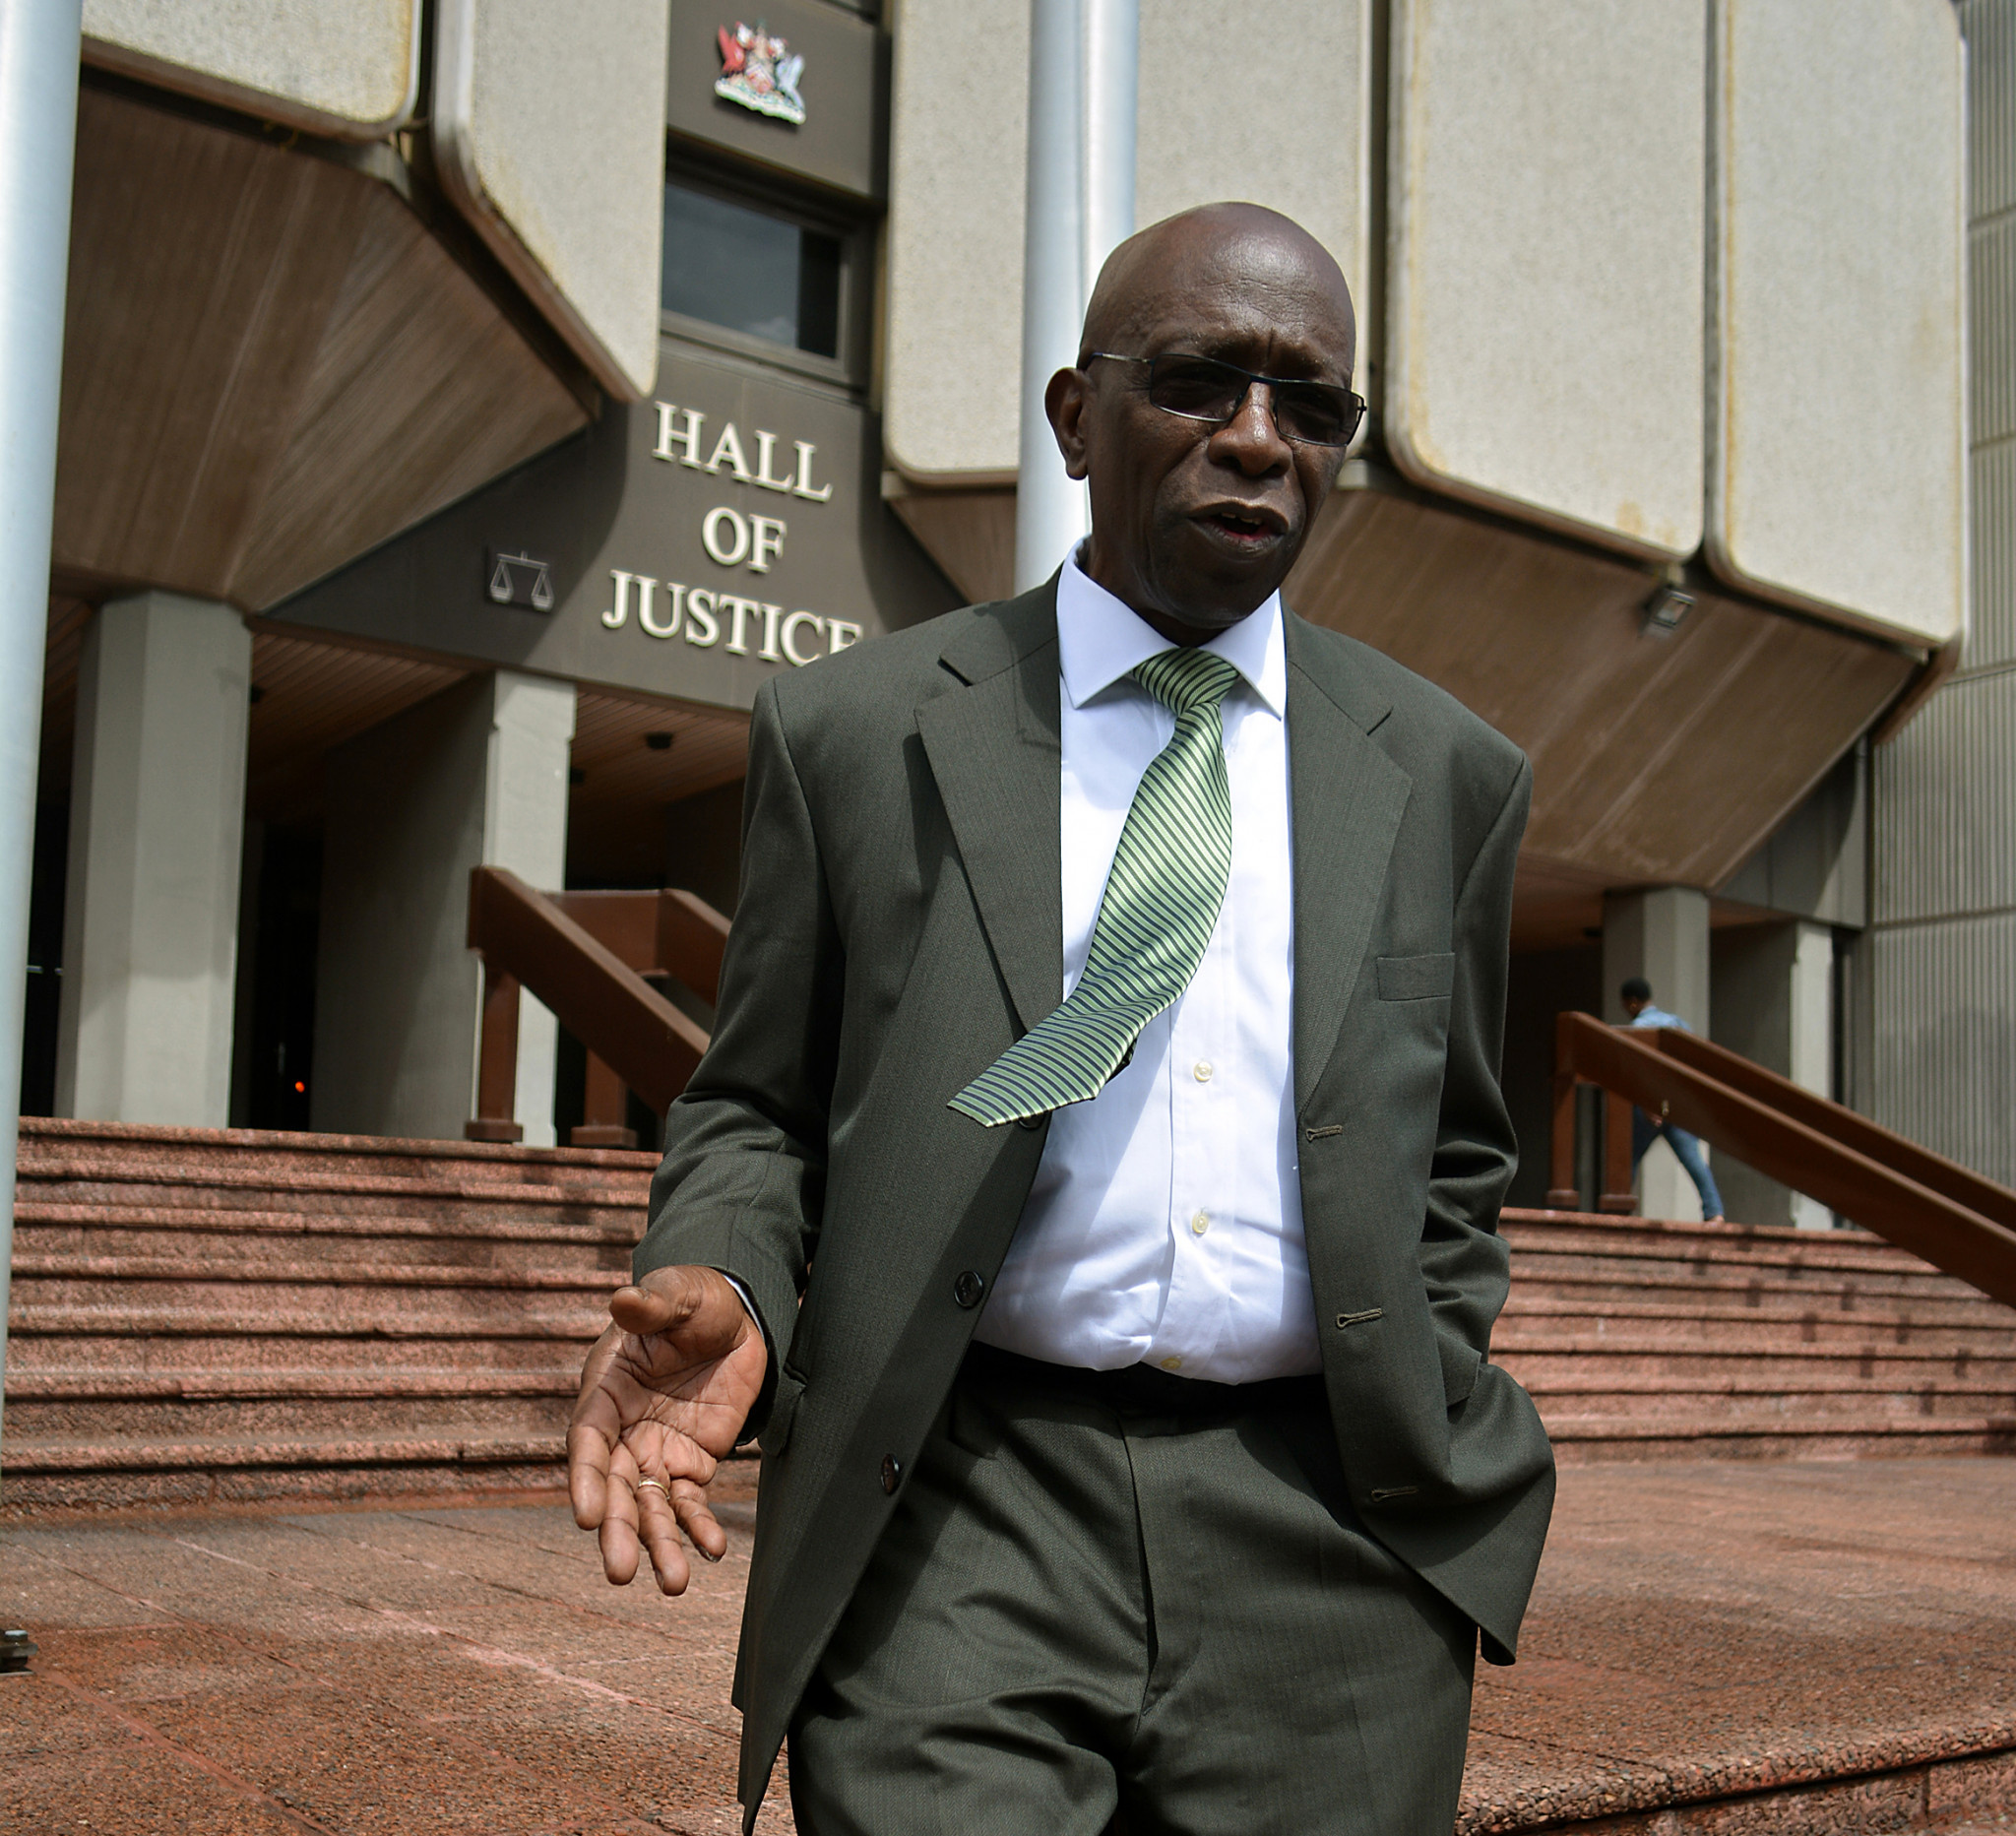 Jack Warner is accused of multiple corruption offences but denies wrongdoing ©Getty Images